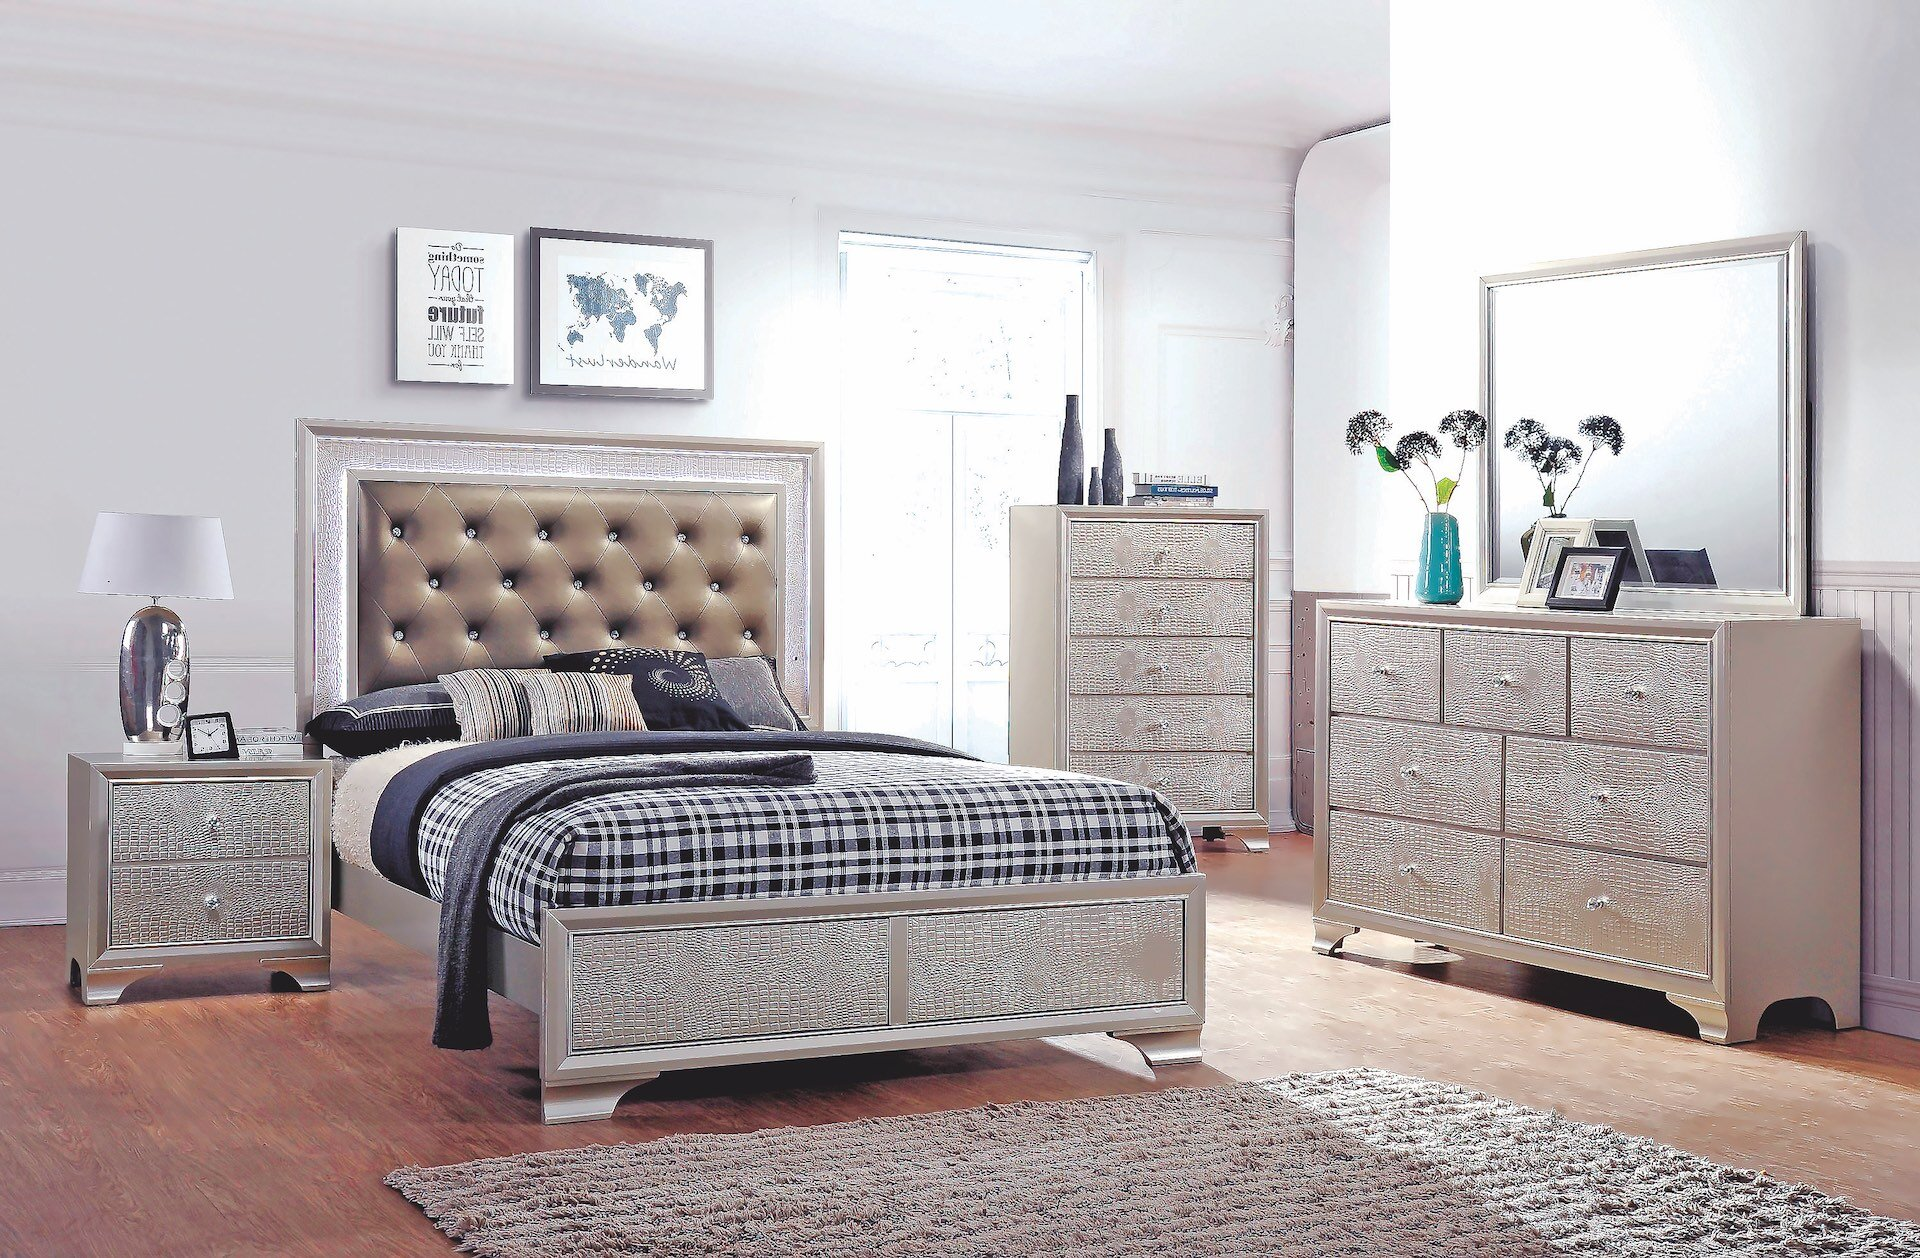 3 Piece Queen Riviera Bedroom Daniels Furniture Cleveland Bedford Euclid Garfield Heights Maple Heights Richmond Heights Furniture Store Mattress Store